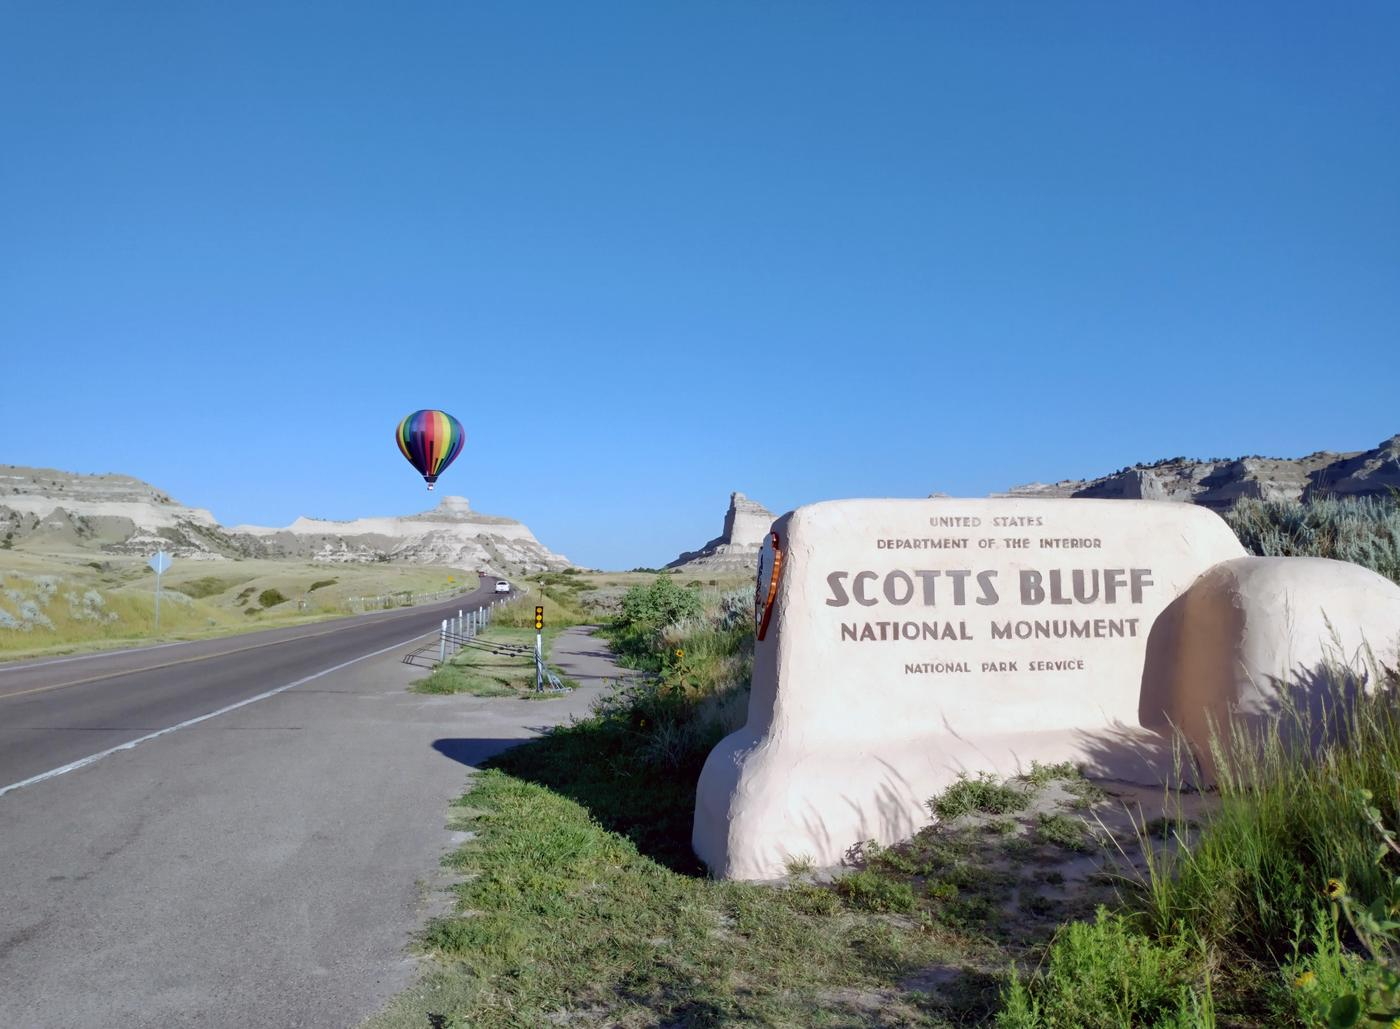 A Hot Air Balloon at the East Entrance to the MonumentA hot air balloon is seen at the east entrance to Scotts Bluff National Monument.